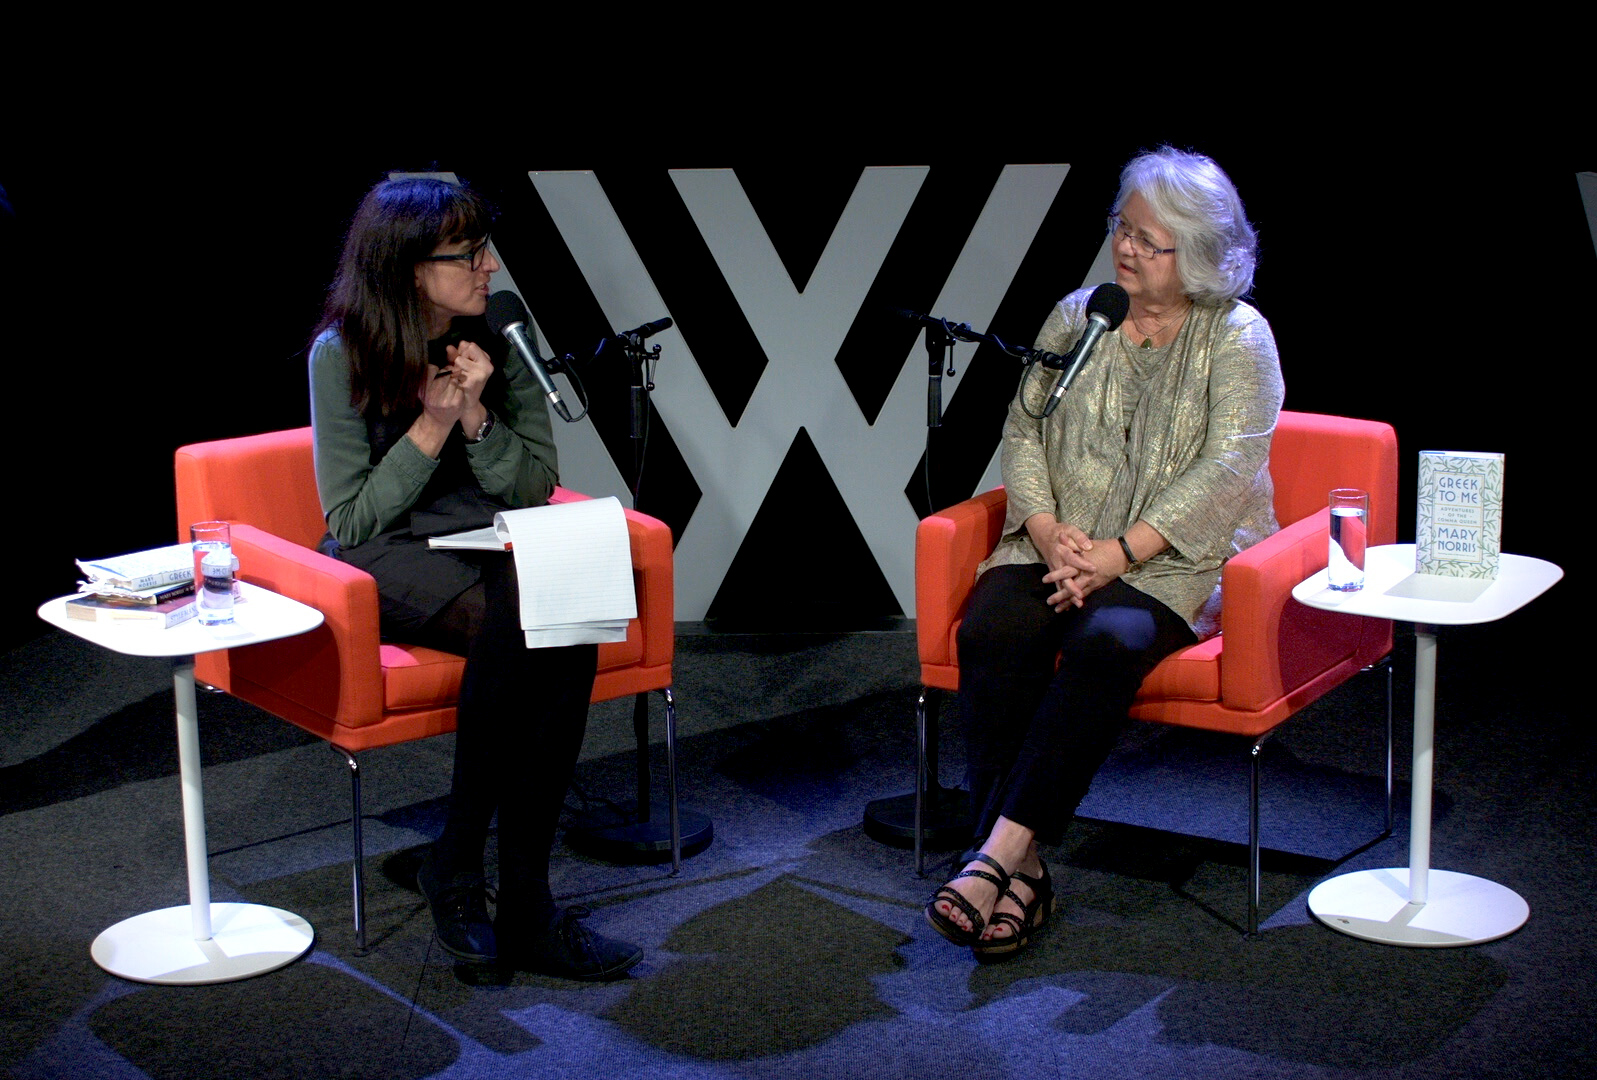 Two women sitting on red chairs with microphones, on the Wheeler Centre stage